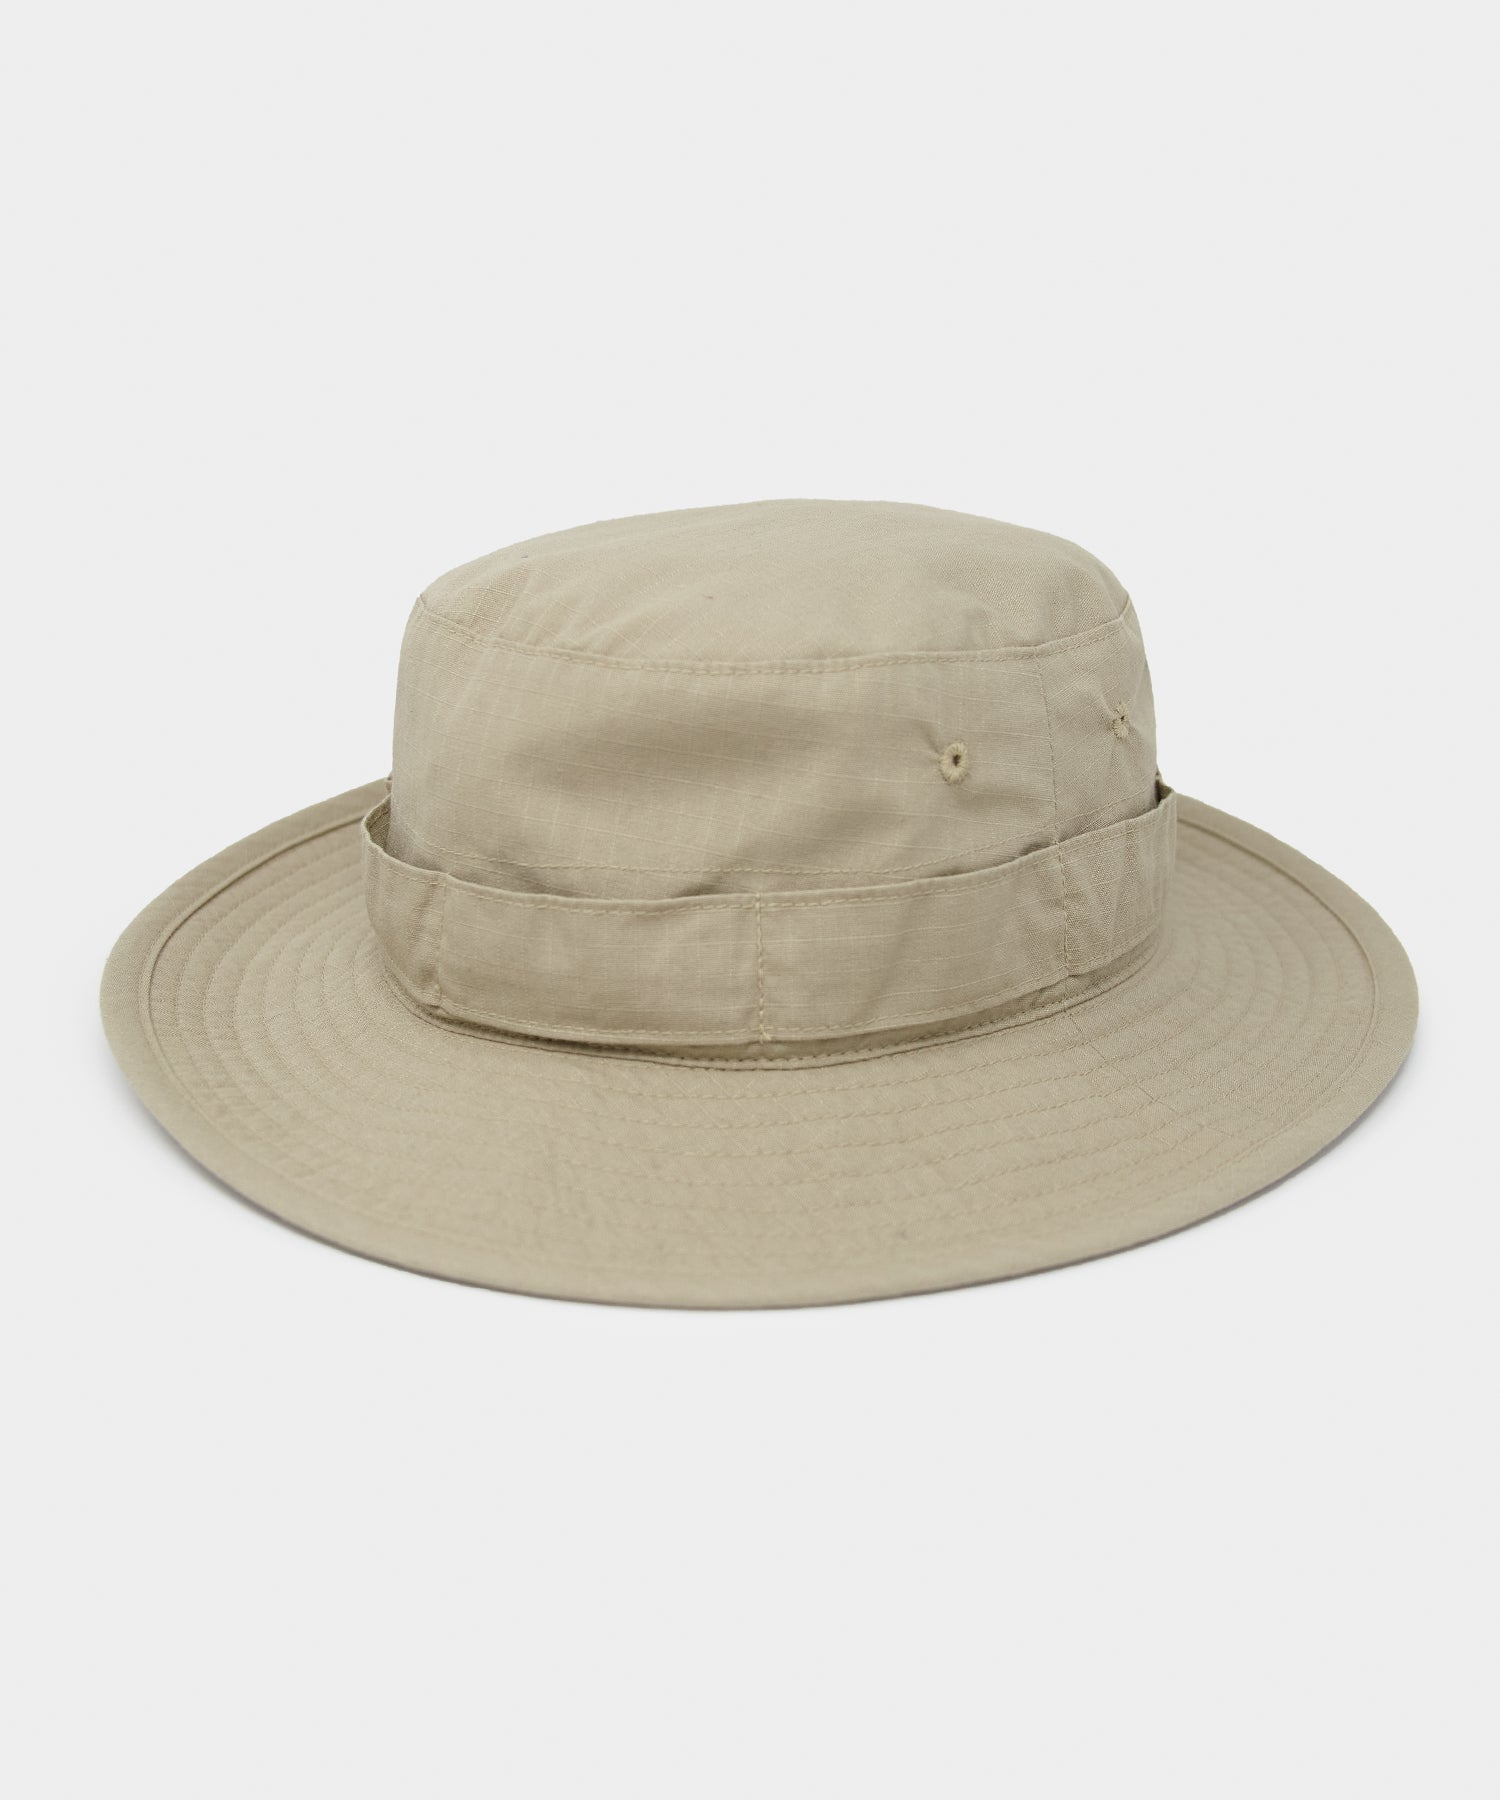 Câbleami Rip-stop Bush Hat in Beige